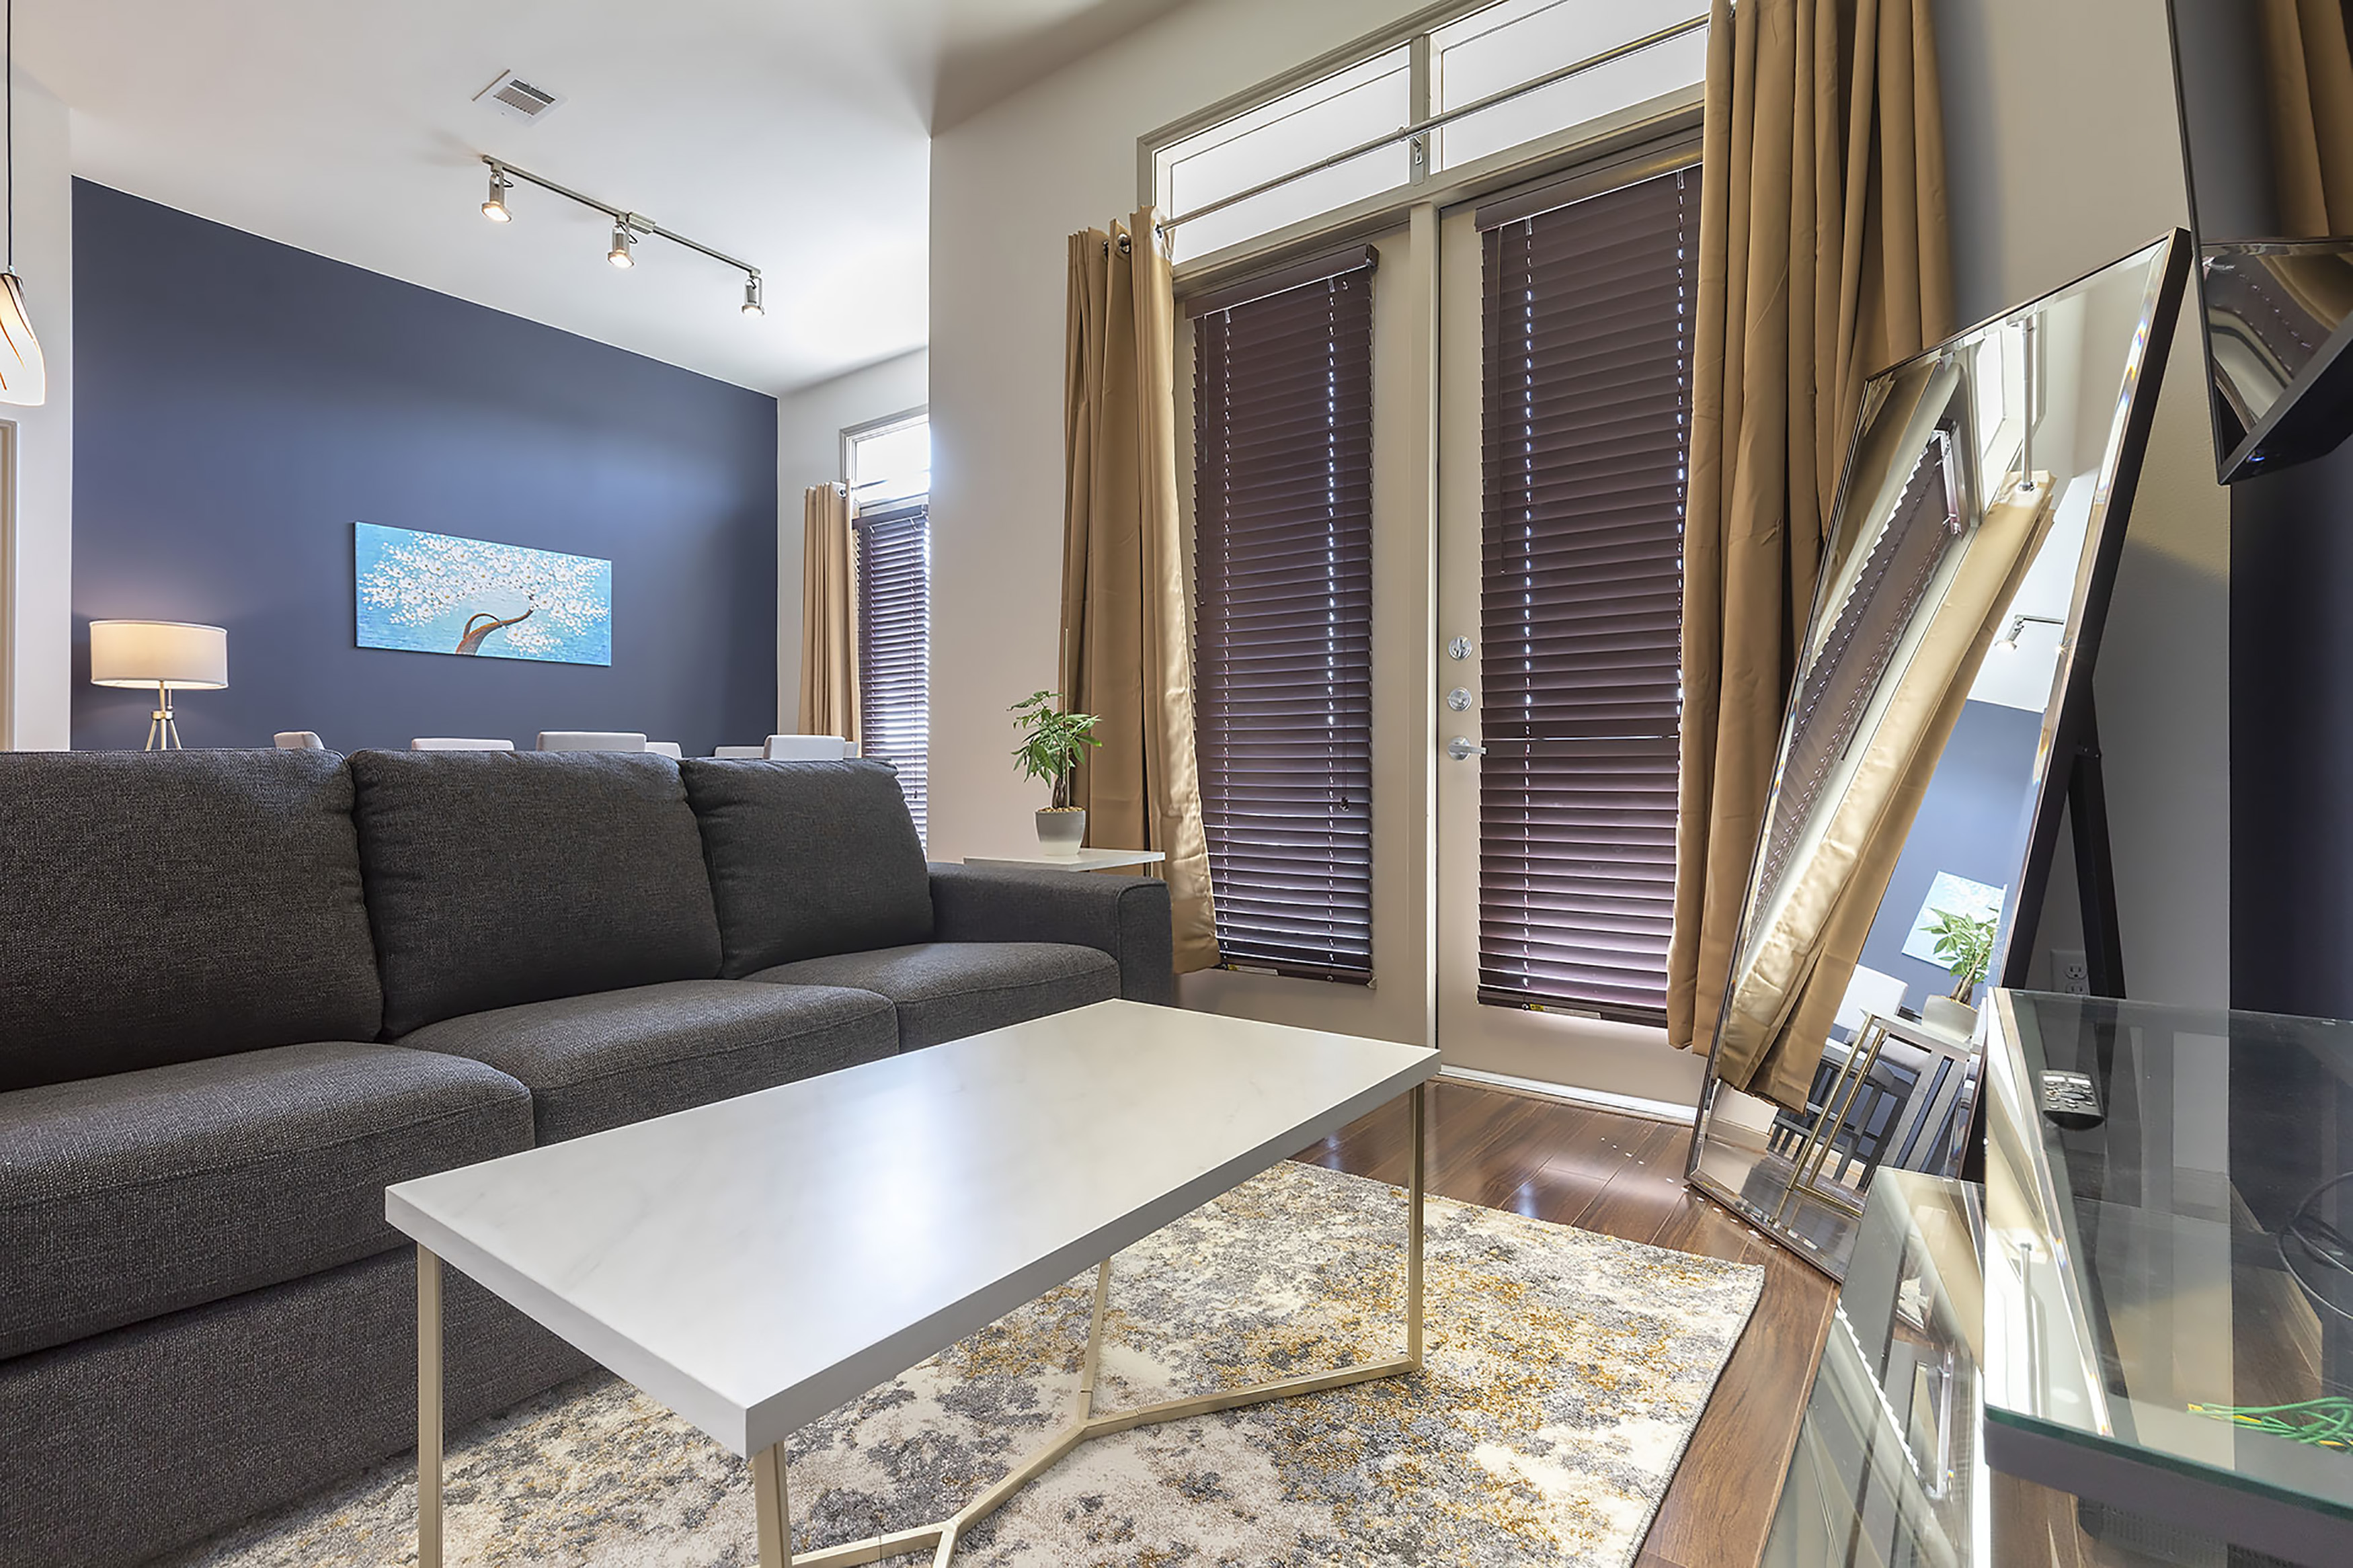 LUXURIOUS CALI KING BED MIDTOWN FULLY EQUIPPED CONDO - ⭐⭐⭐⭐⭐ photo 21440916